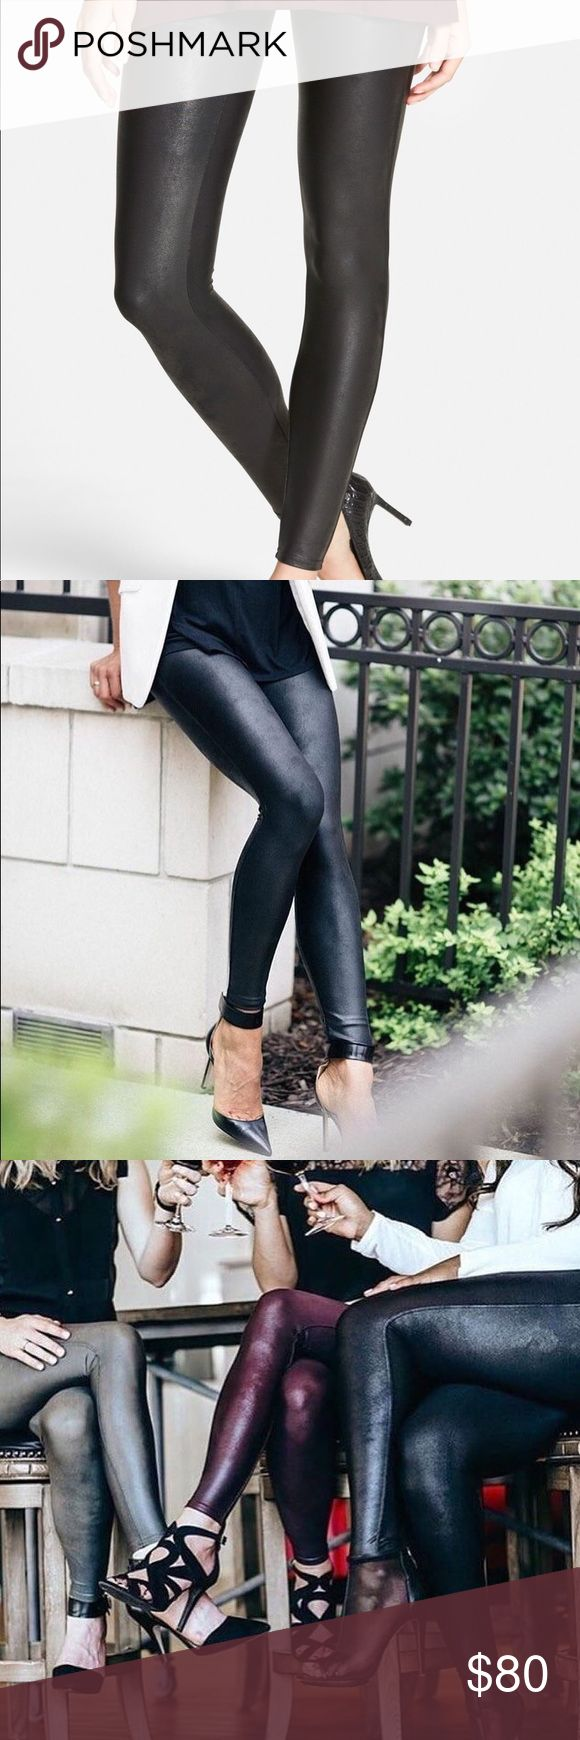 Spanx Faux Leather Leggings The Slim is Built In™— contoured Power Waistband offers tummy shaping and a perky rear view! Designed to hit at natural waist for great coverage and no muffin top Center-seam free SPANX Pants Leggings